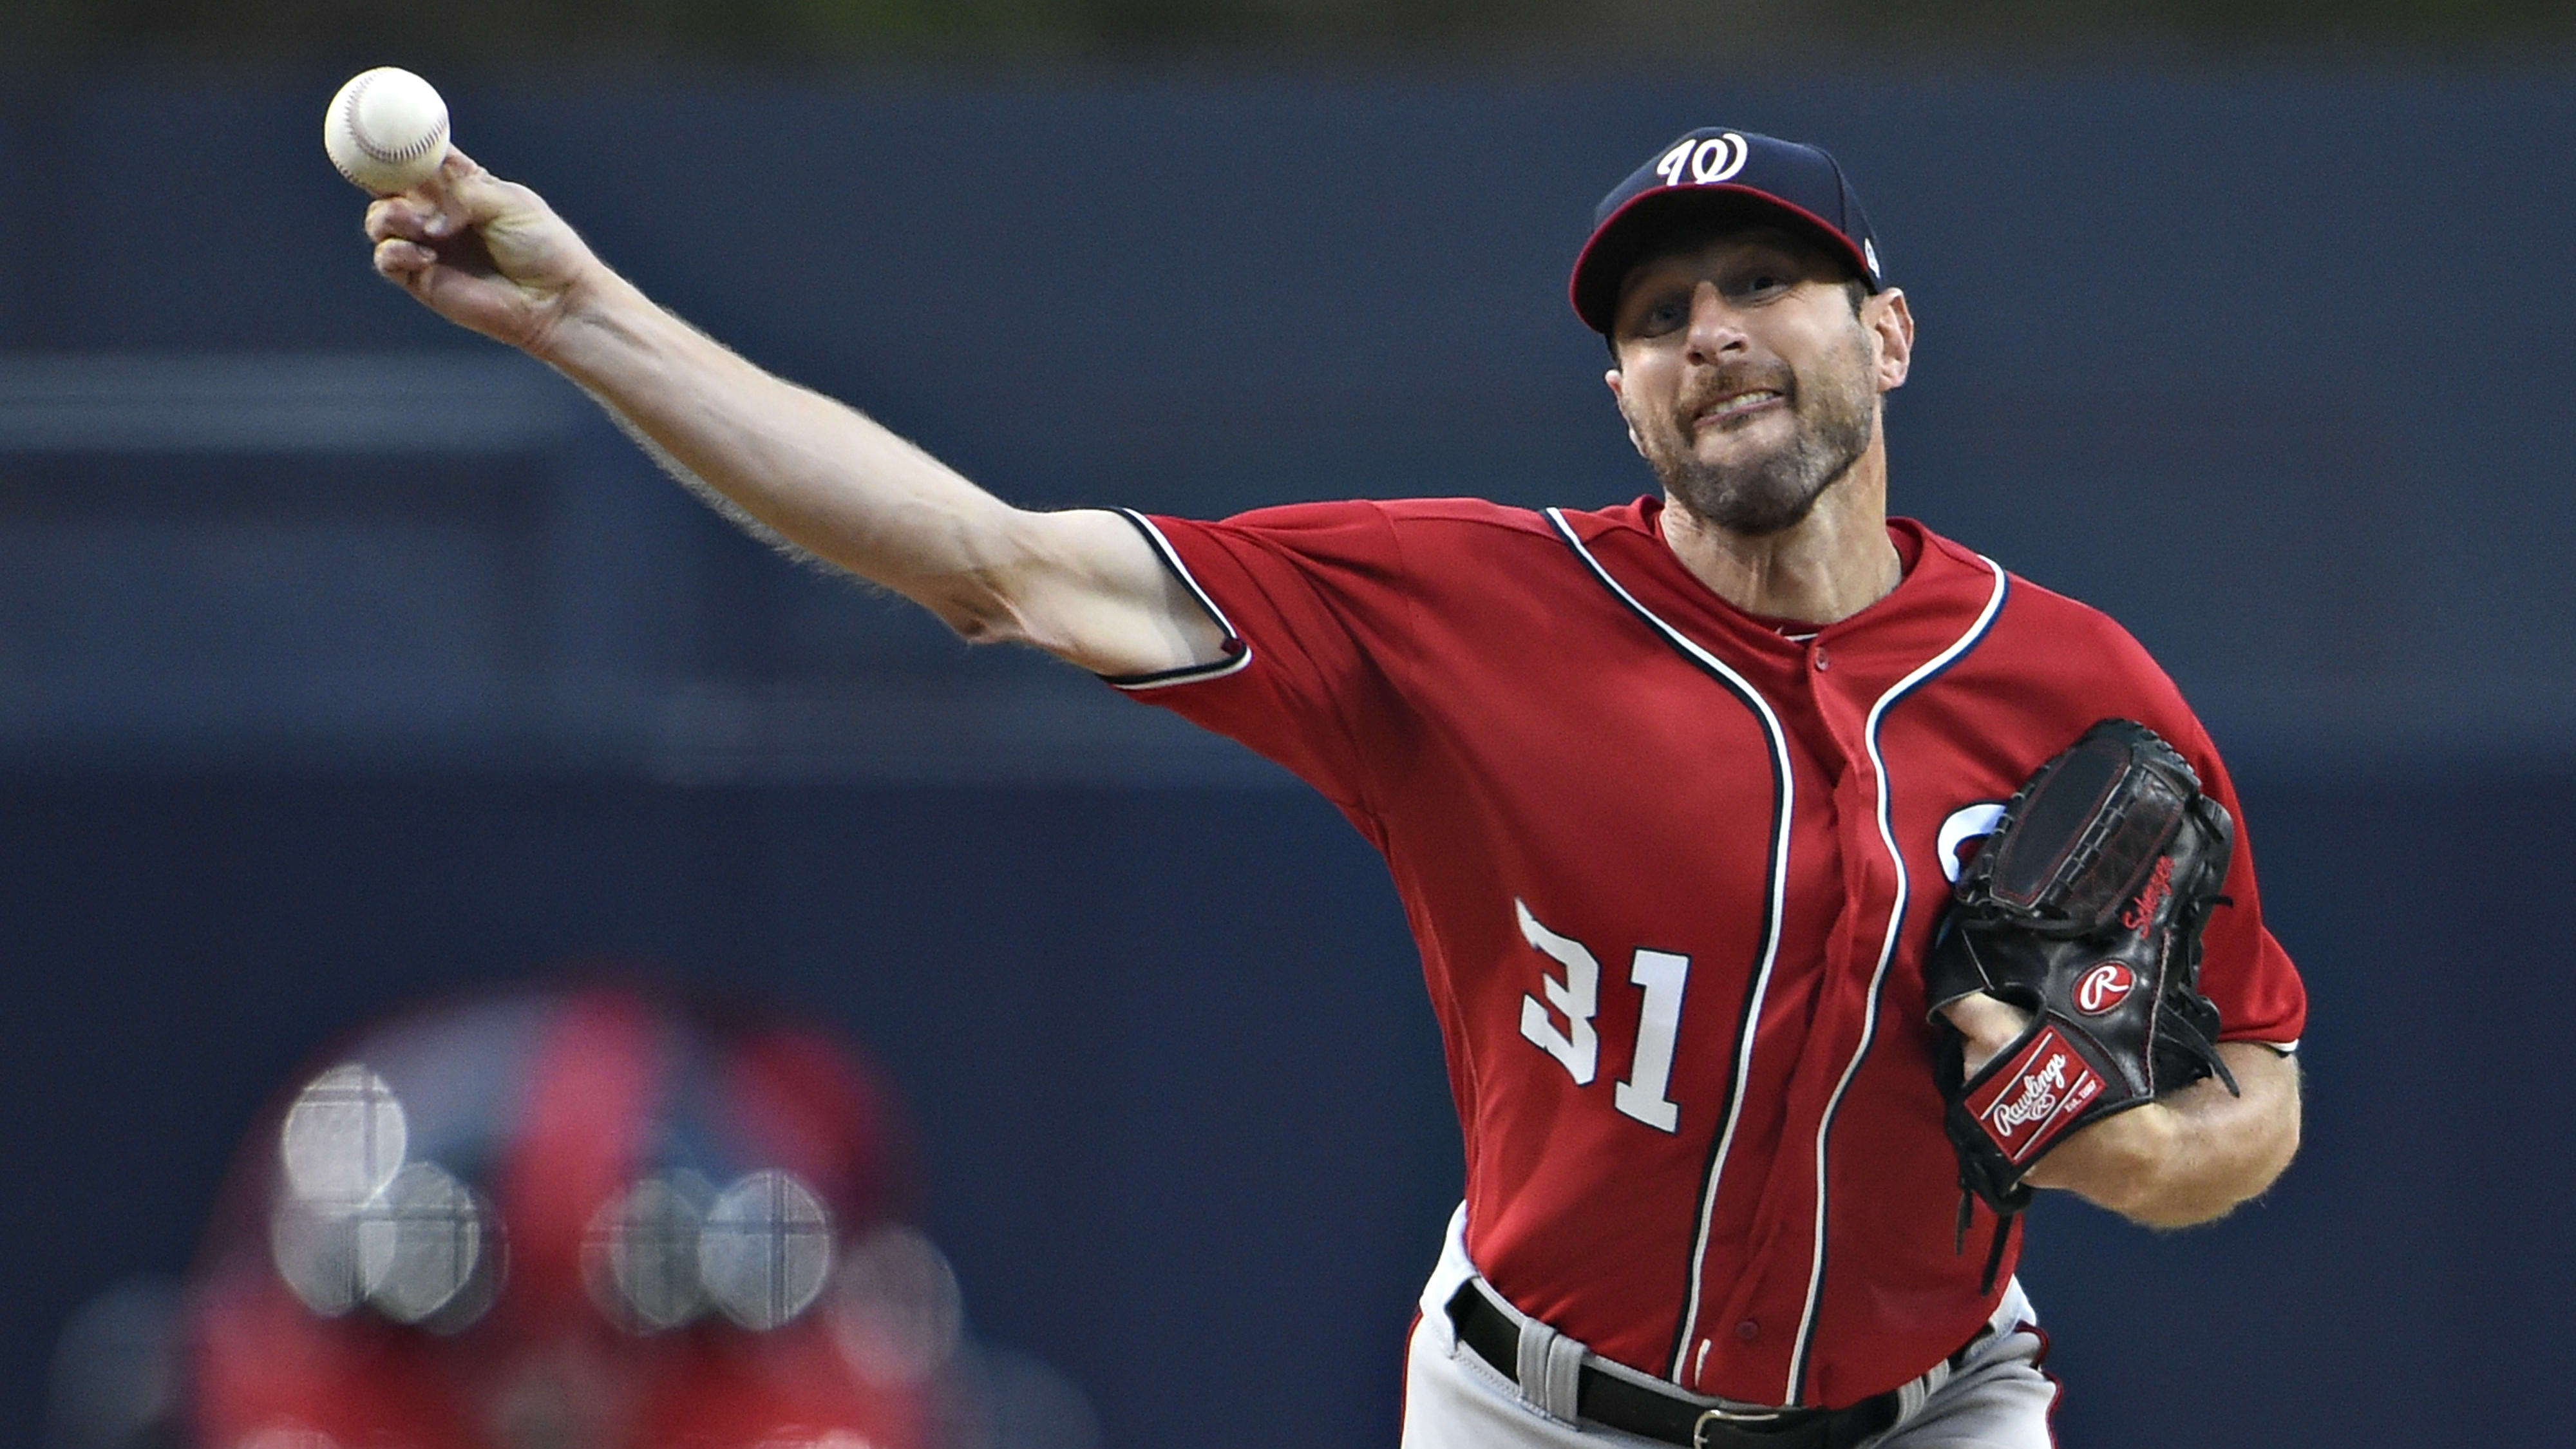 SAN DIEGO, CA - JUNE 8: Max Scherzer #31 of the Washington Nationals pitches during the first inning of a baseball game against the San Diego Padres at Petco Park June 8, 2019 in San Diego, California.  (Photo by Denis Poroy/Getty Images)